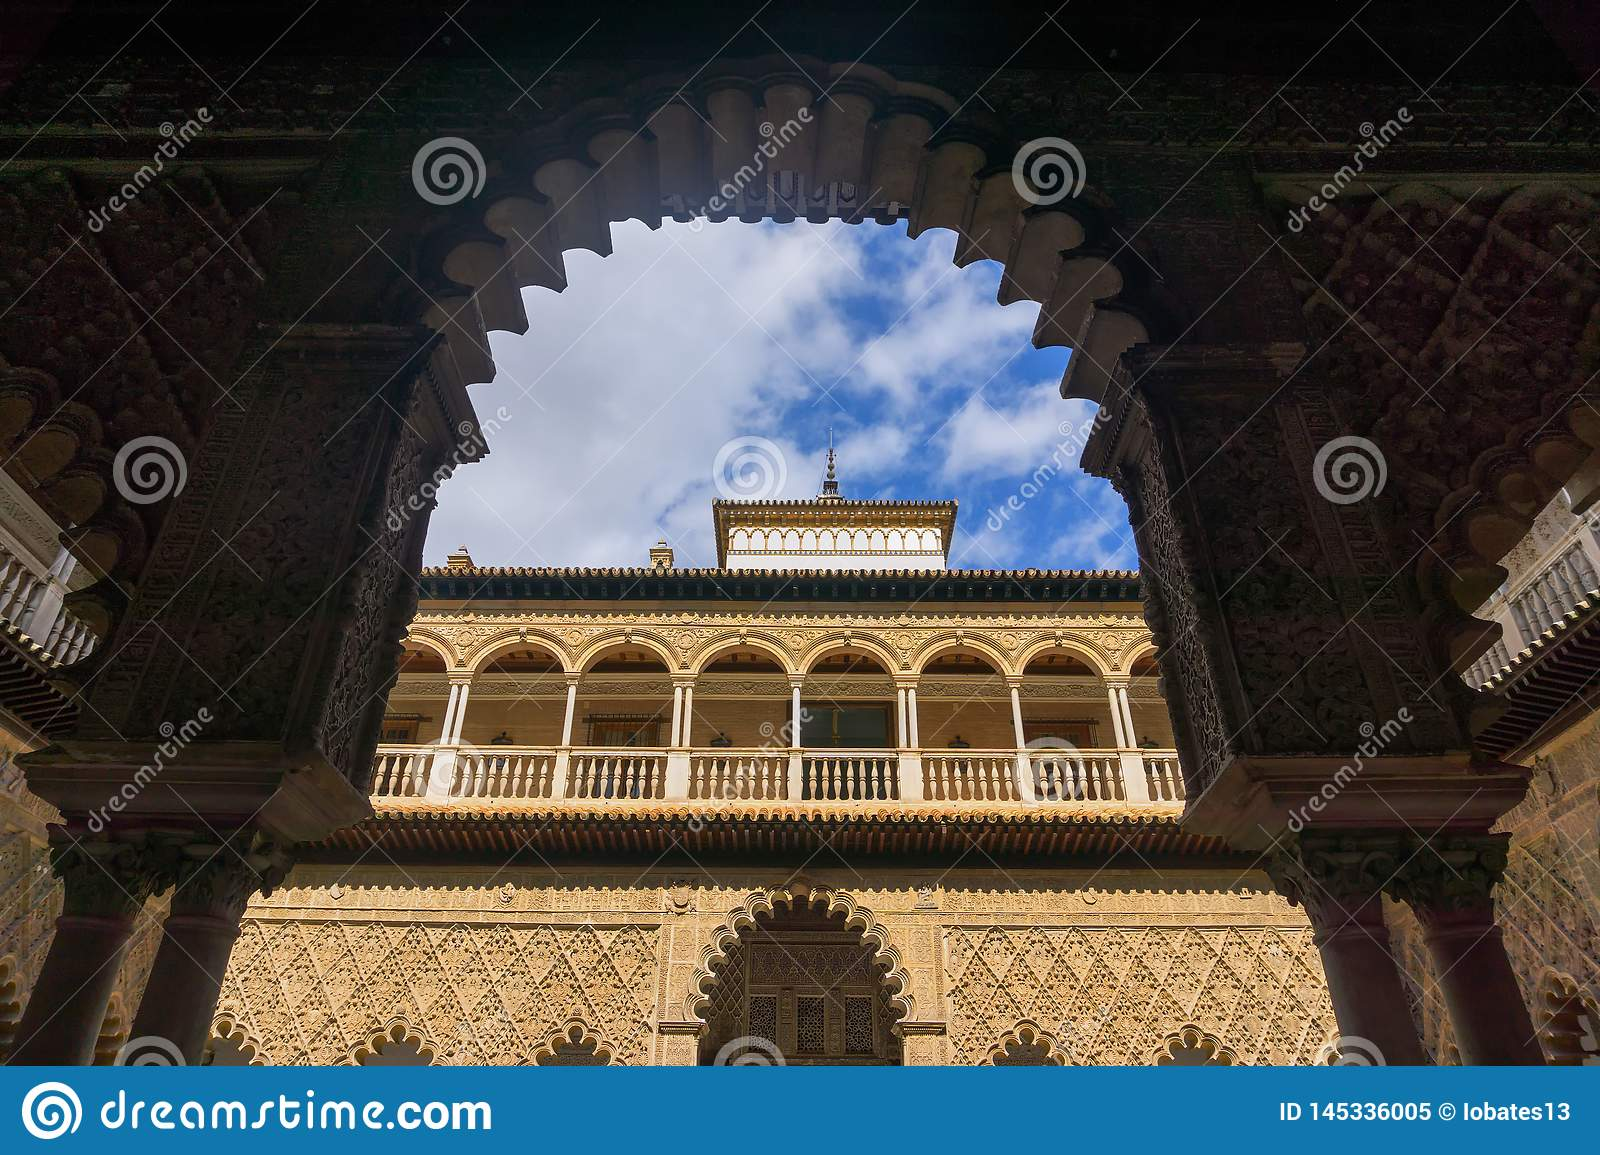 Courtyard of the Maidens in the Real Alcazar Palace in Seville, Spain